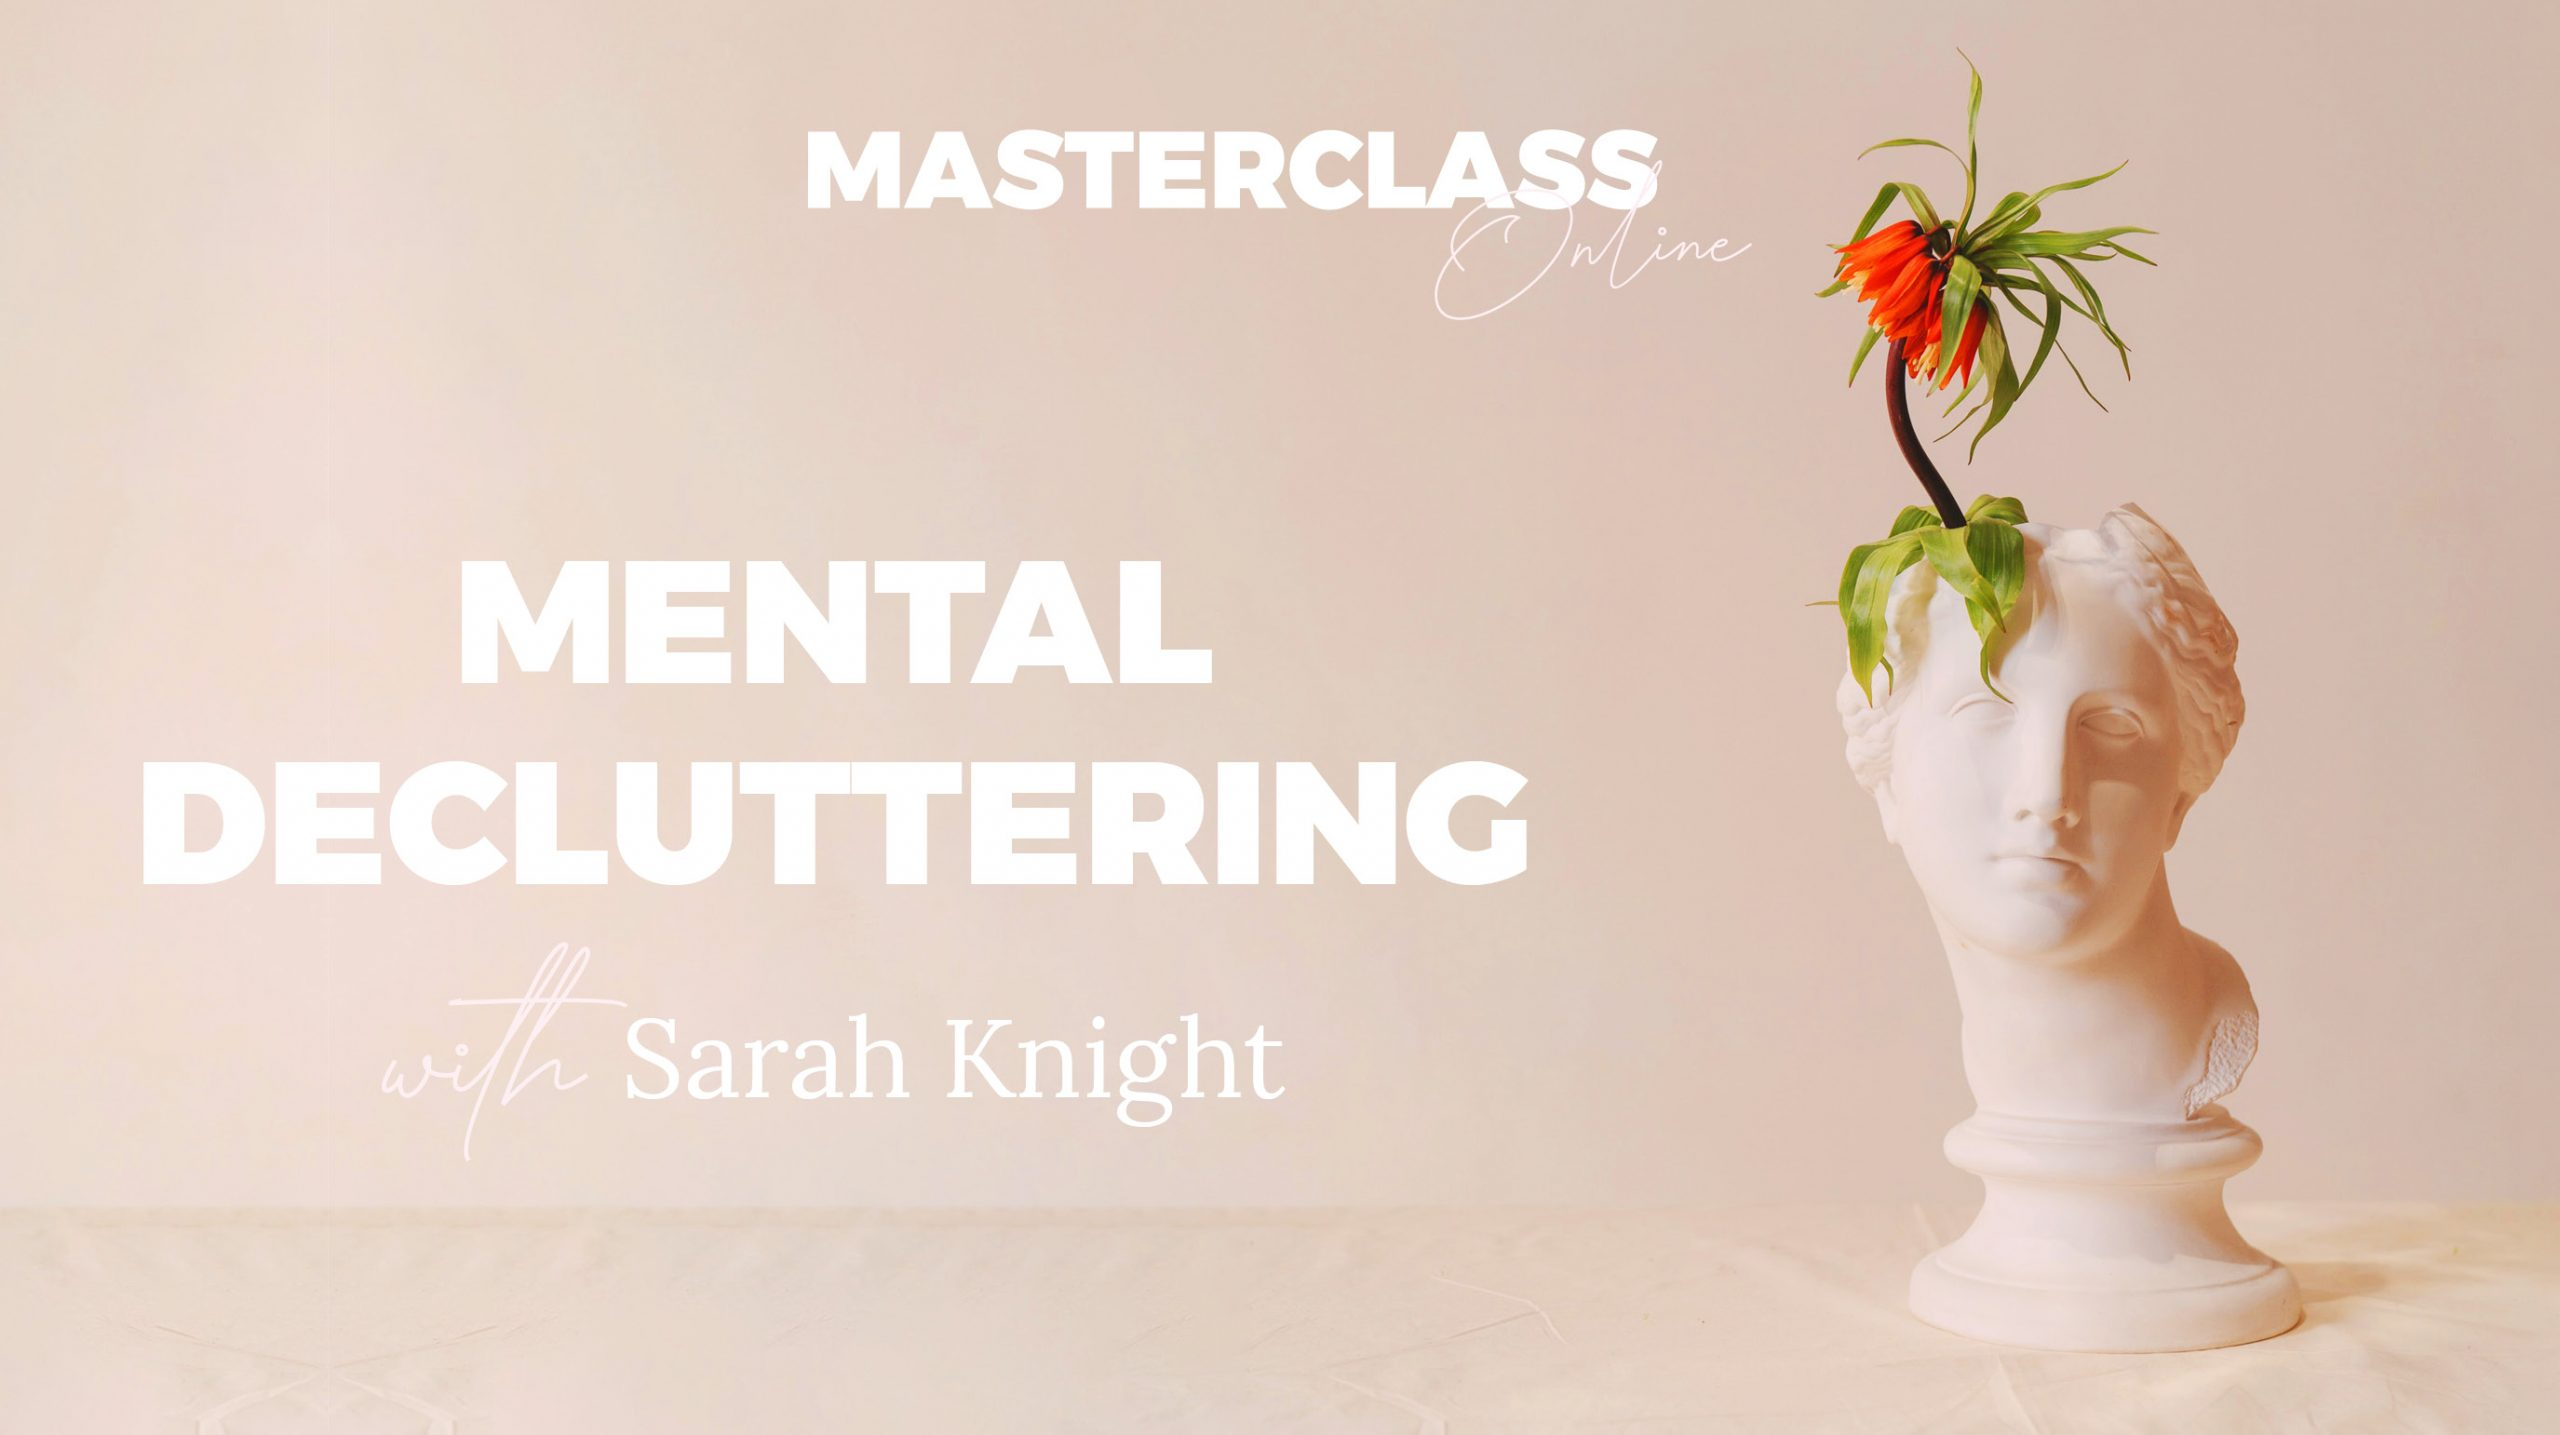 Masterclass: Mental Decluttering with Sarah Knight